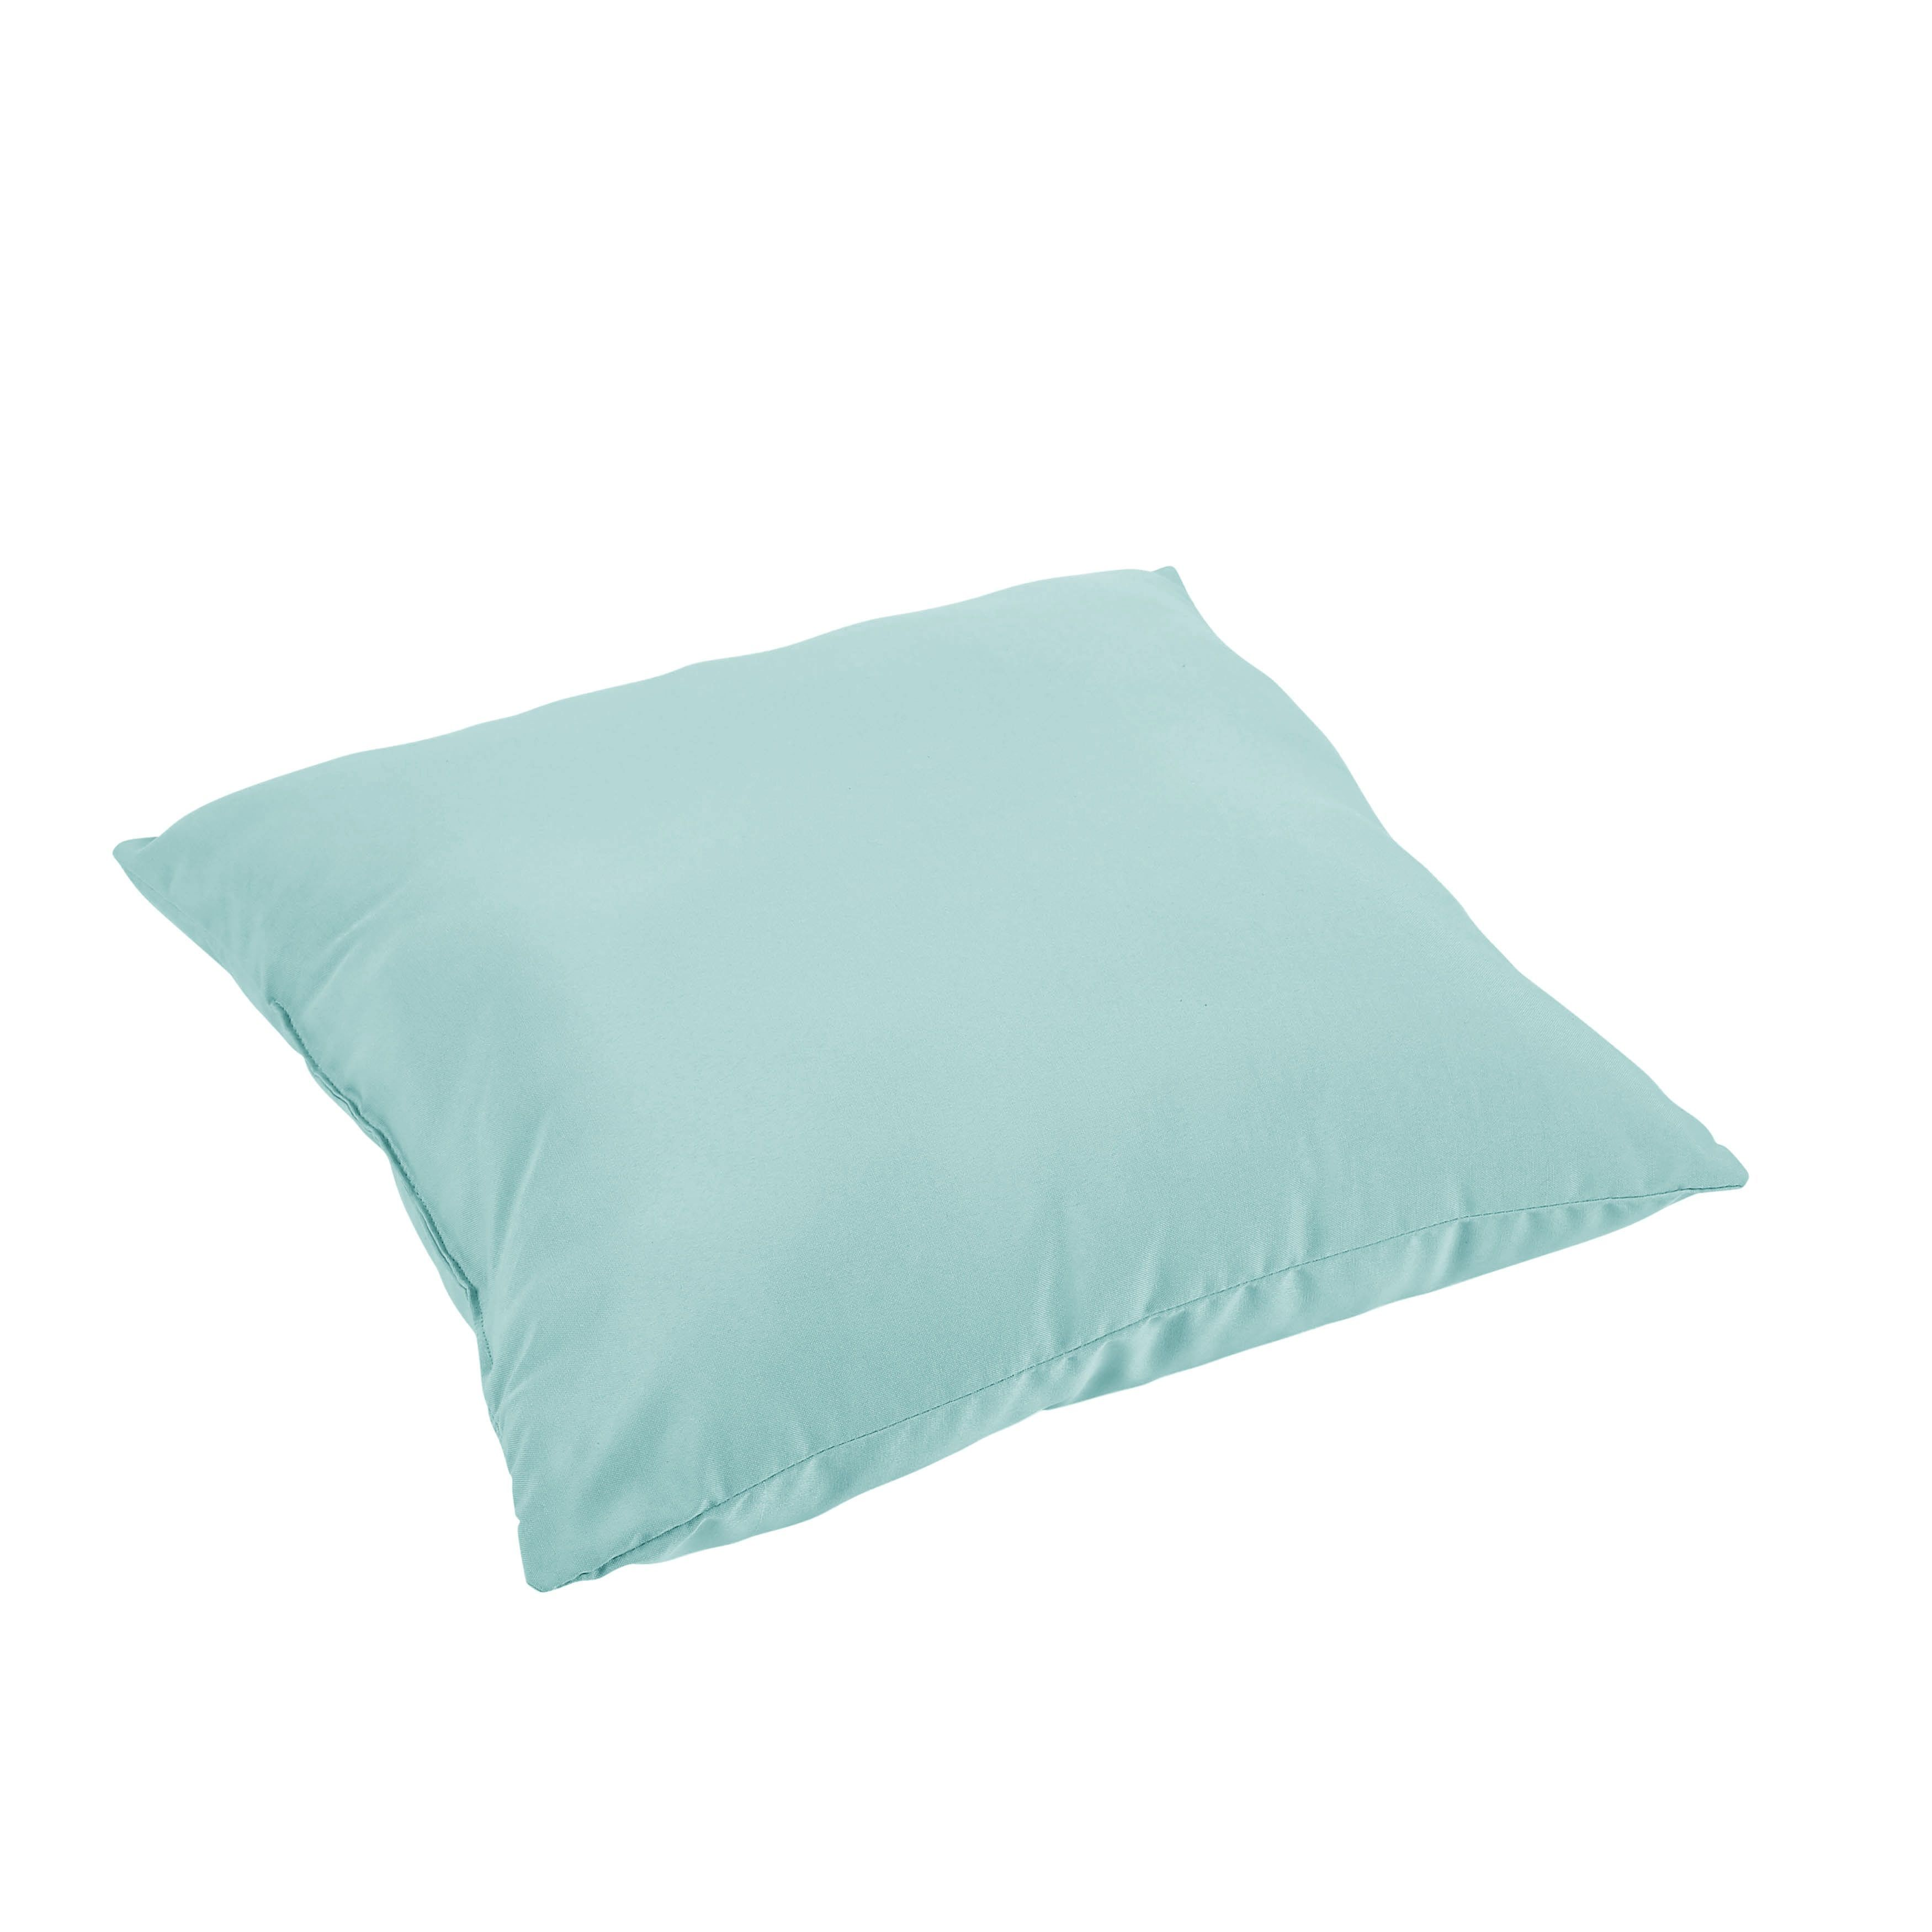 Verne Light Aqua Indoor Outdoor 26 Inch Knife Edge Floor Pillow Osps7444 Blue Polyester Solid Cushion